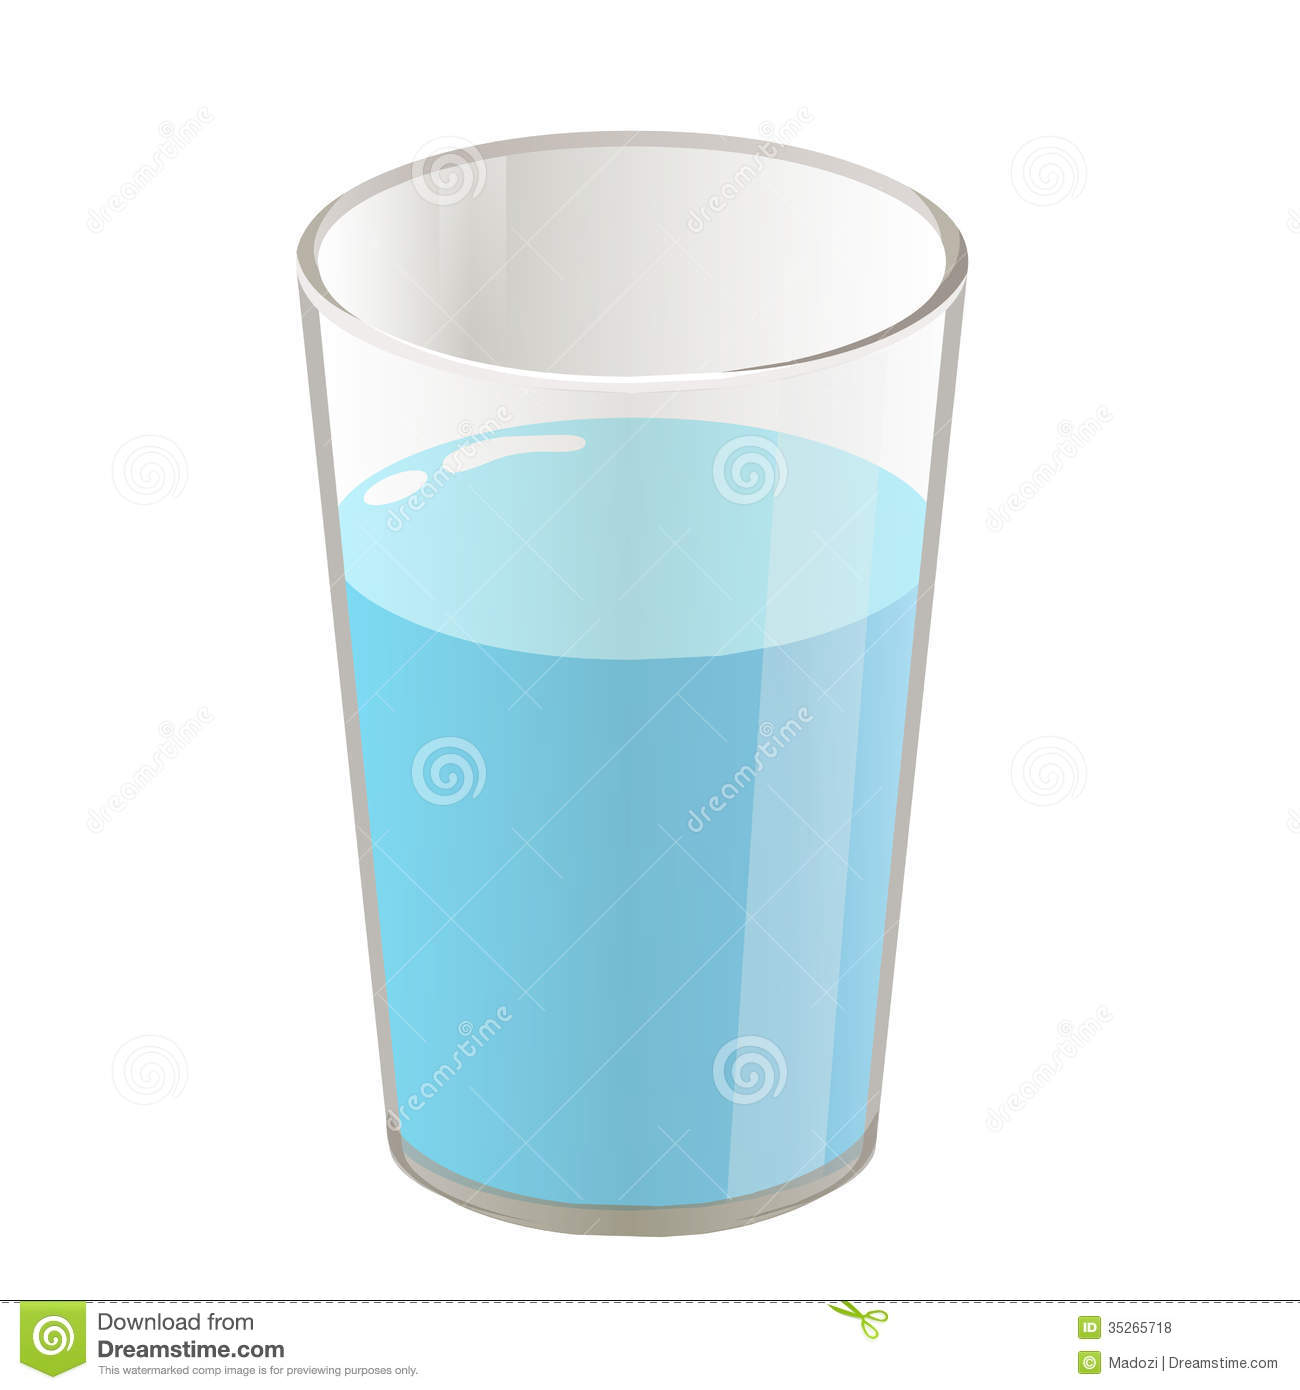 cup of water clipart - photo #14